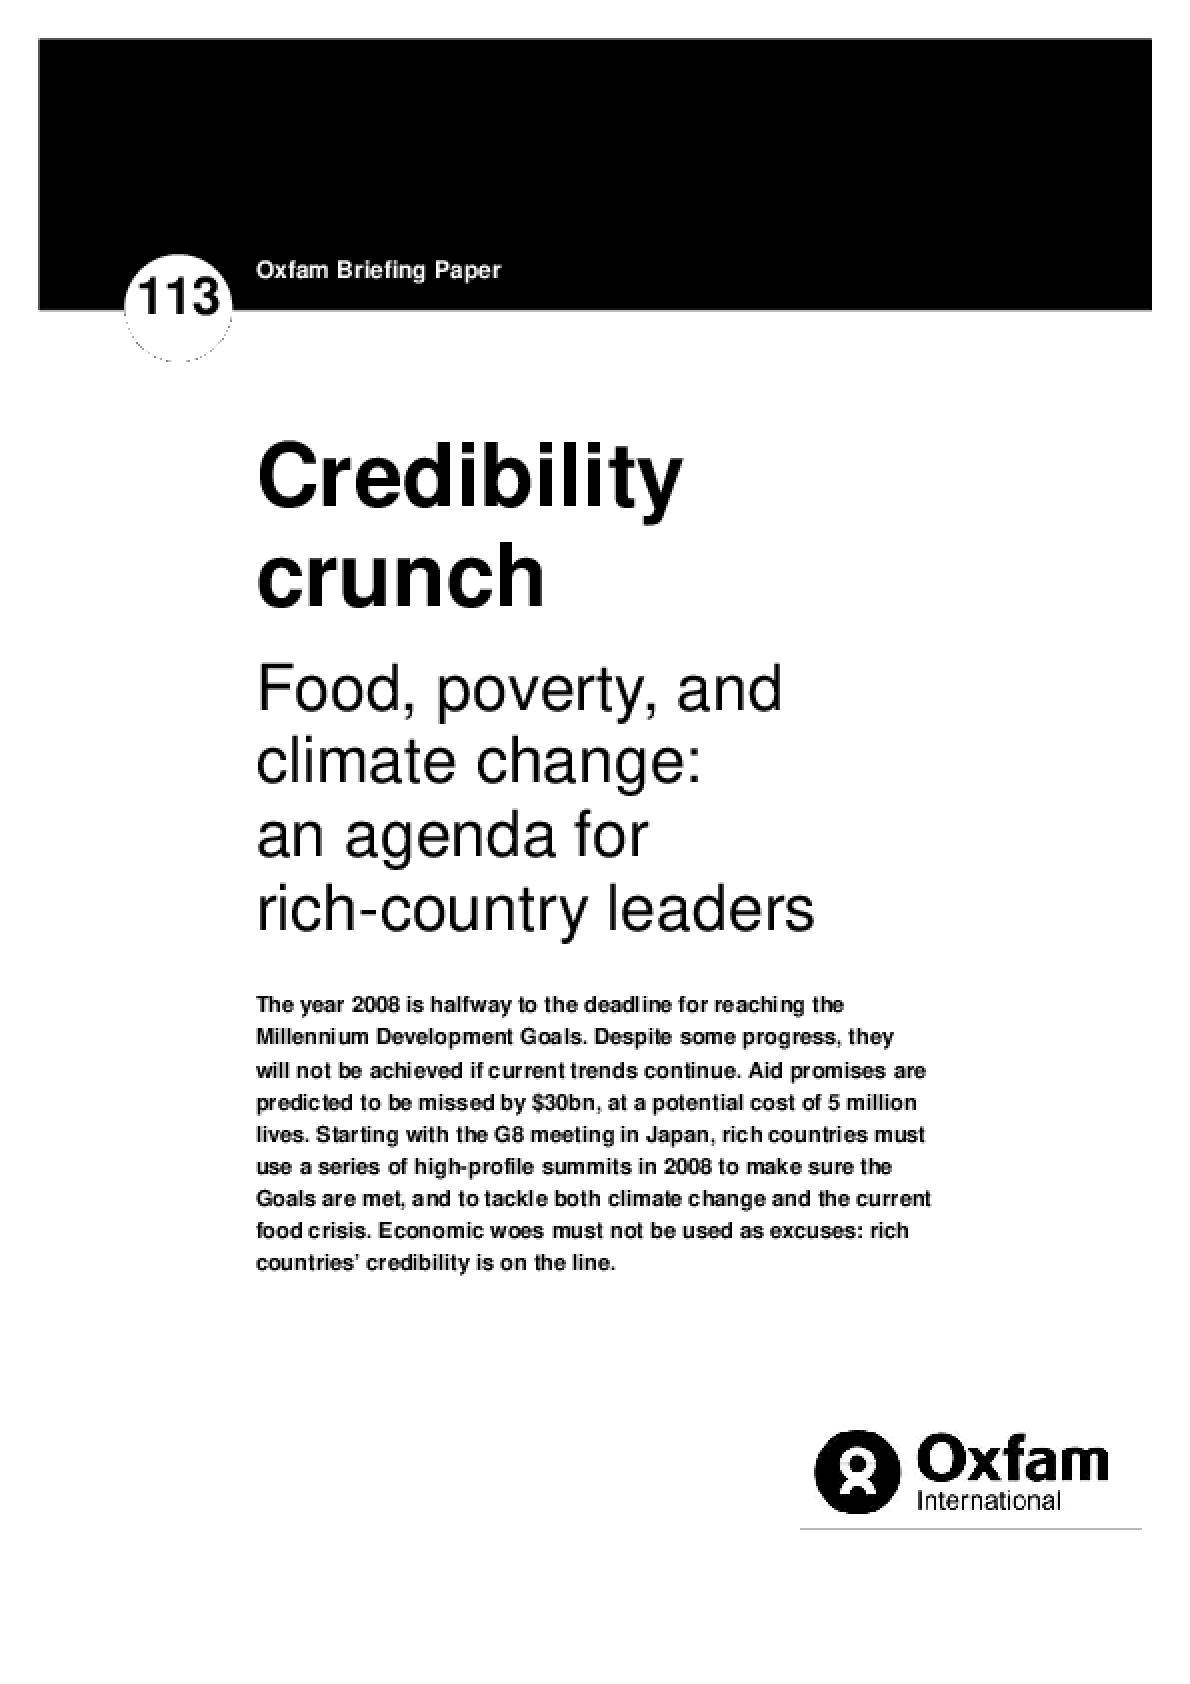 Credibility Crunch: Food, poverty, and climate change: an agenda for rich country leaders